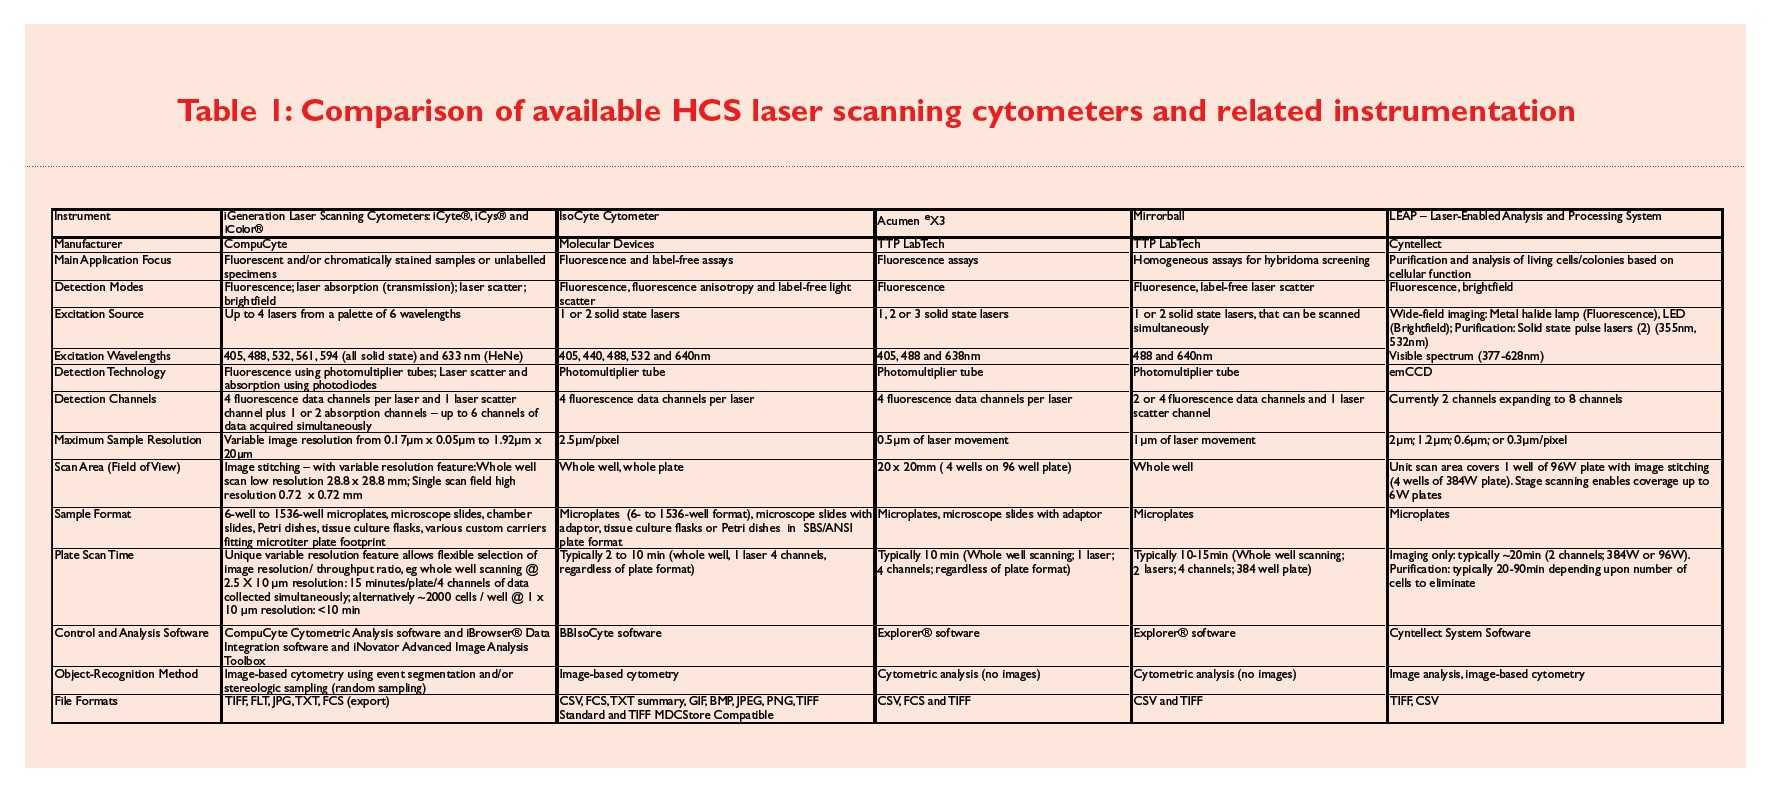 Table 1 Comparison of available HCS laser scanning cytometers and related instrumentation